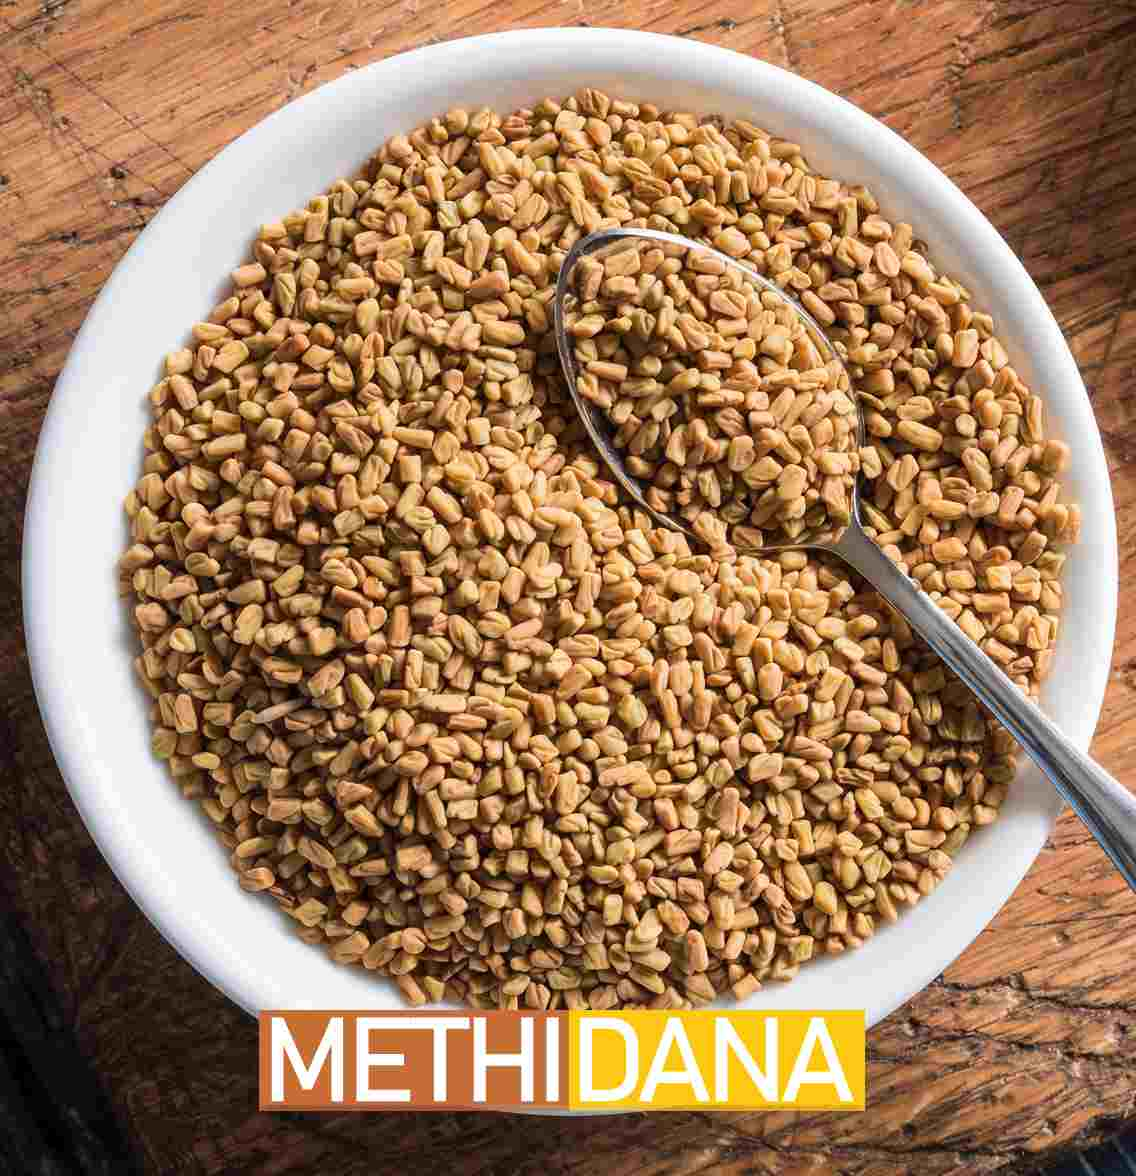 Methi Dana - A healthy addition to your diet